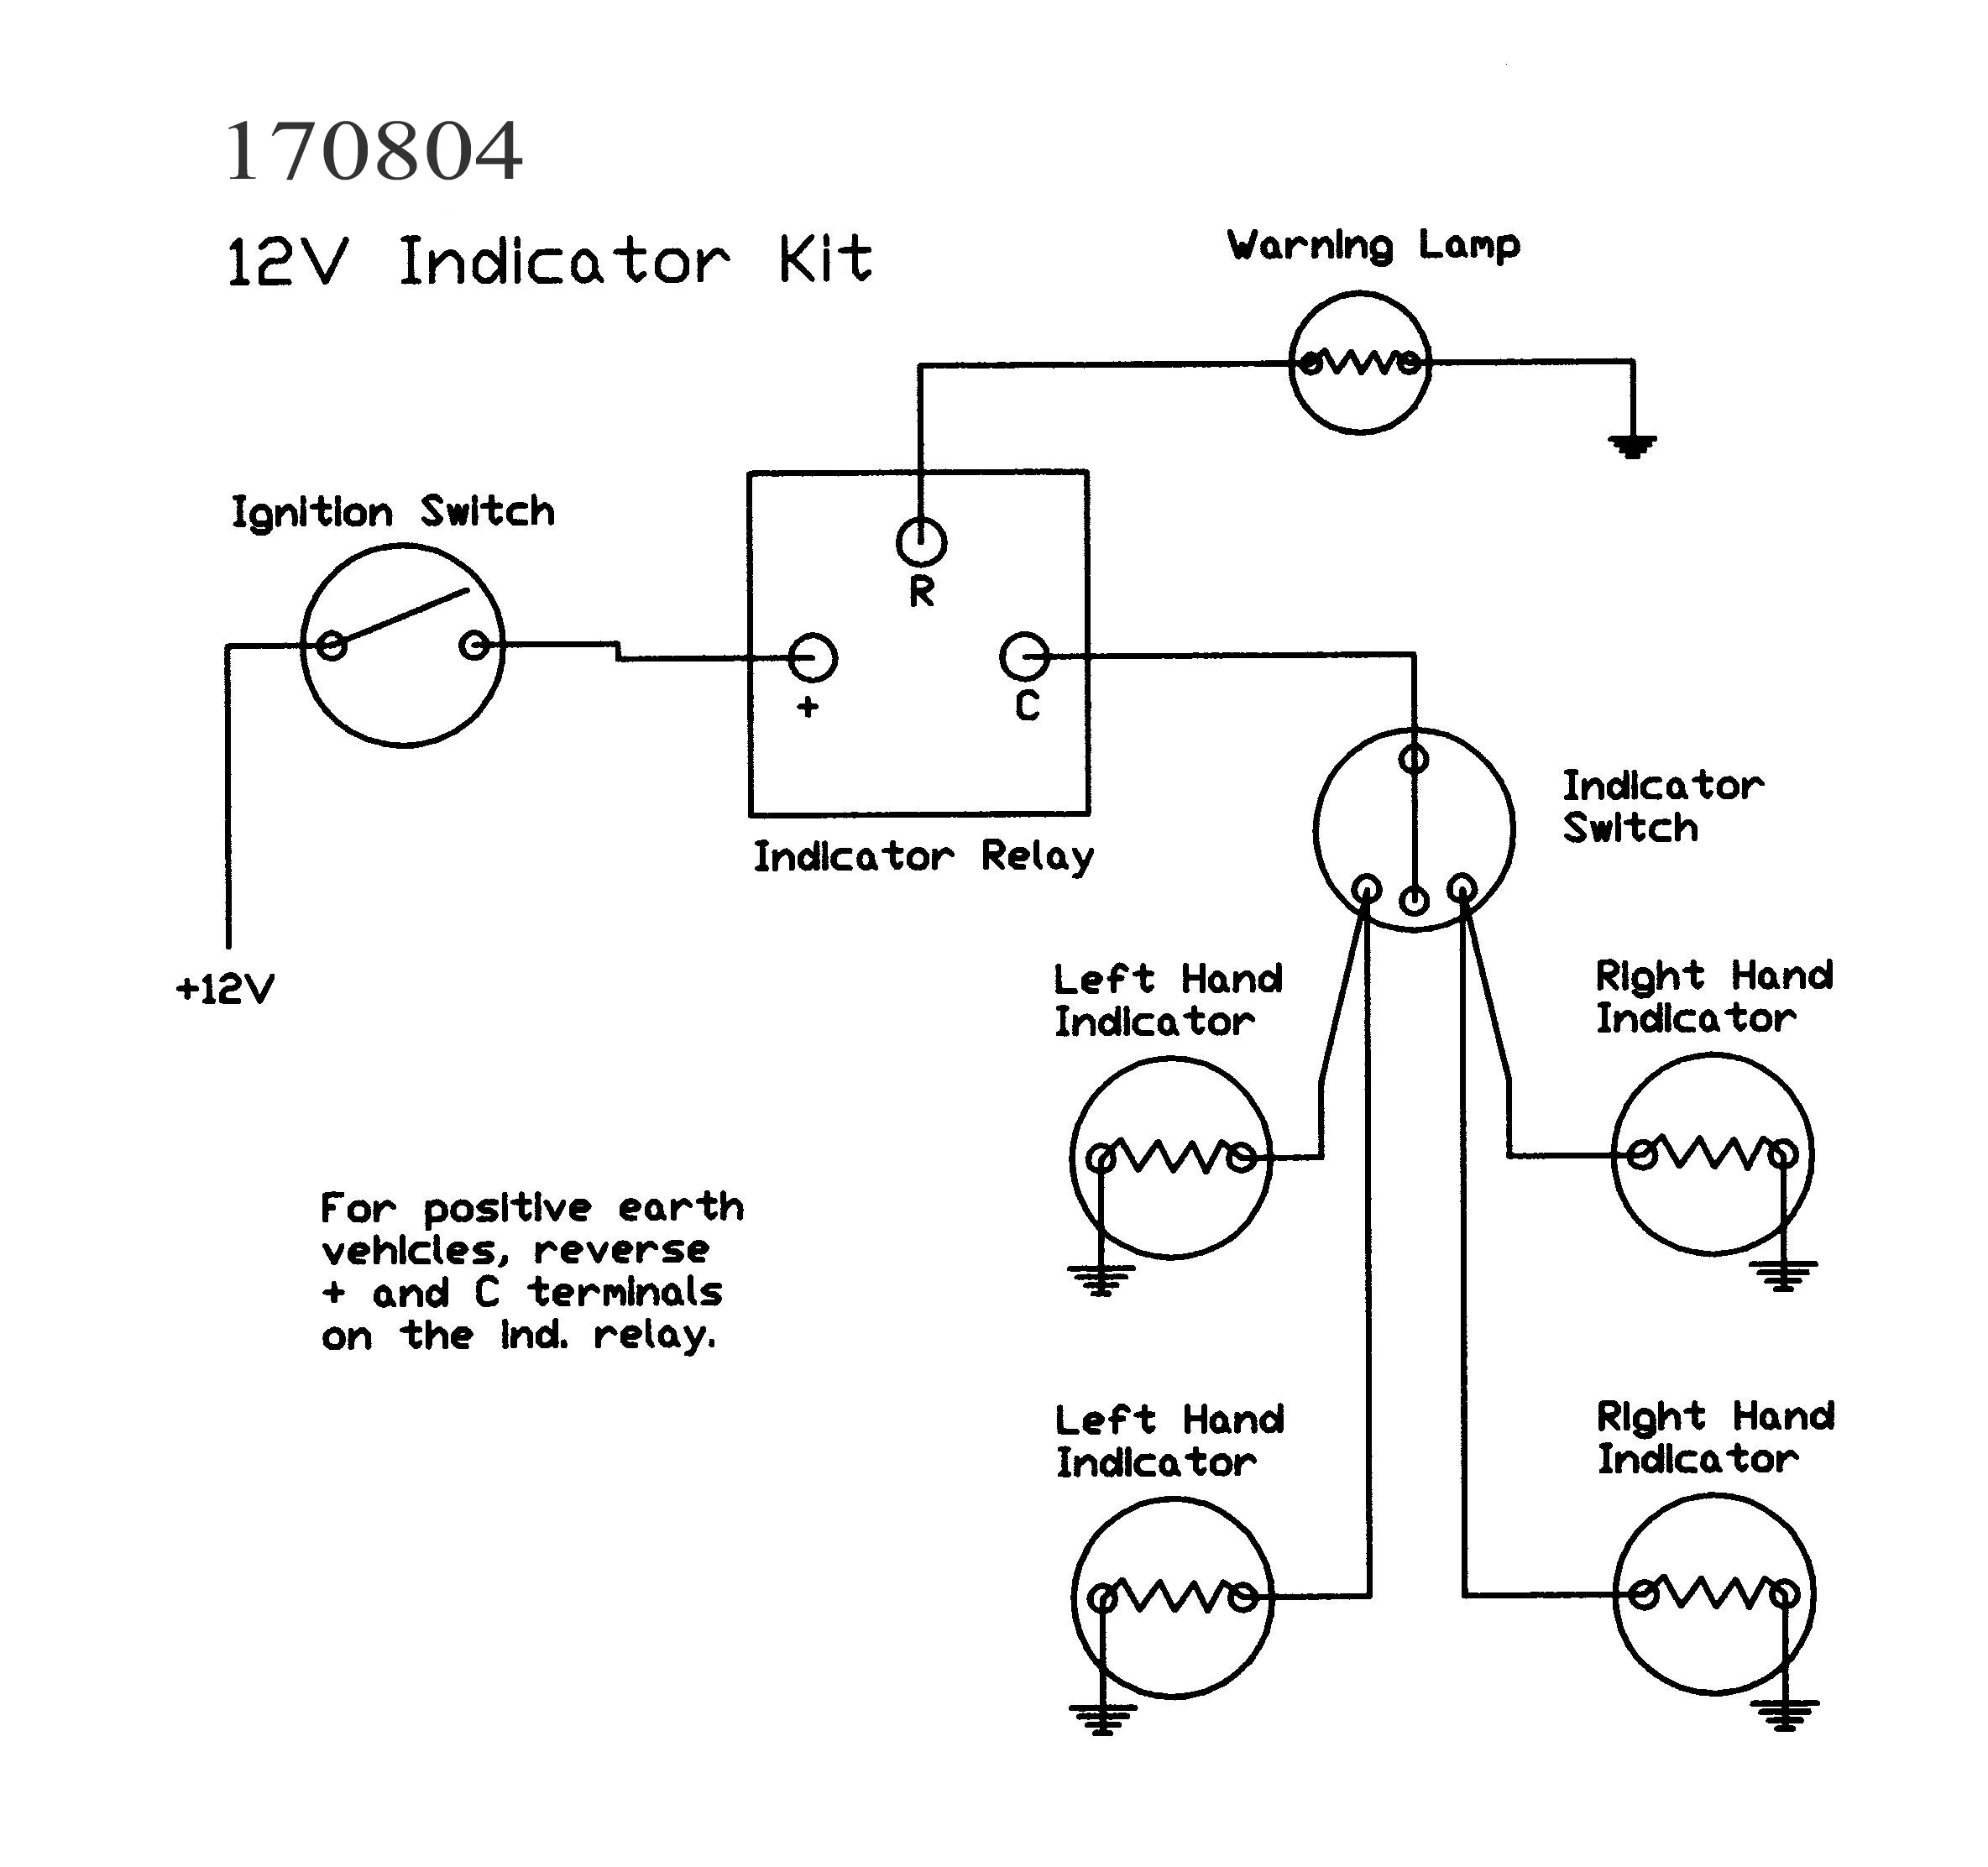 Wiring Diagram Motorcycle Indicators Not Lossing Honda Sl70 All About Diagrams Library Rh 96 Codingcommunity De